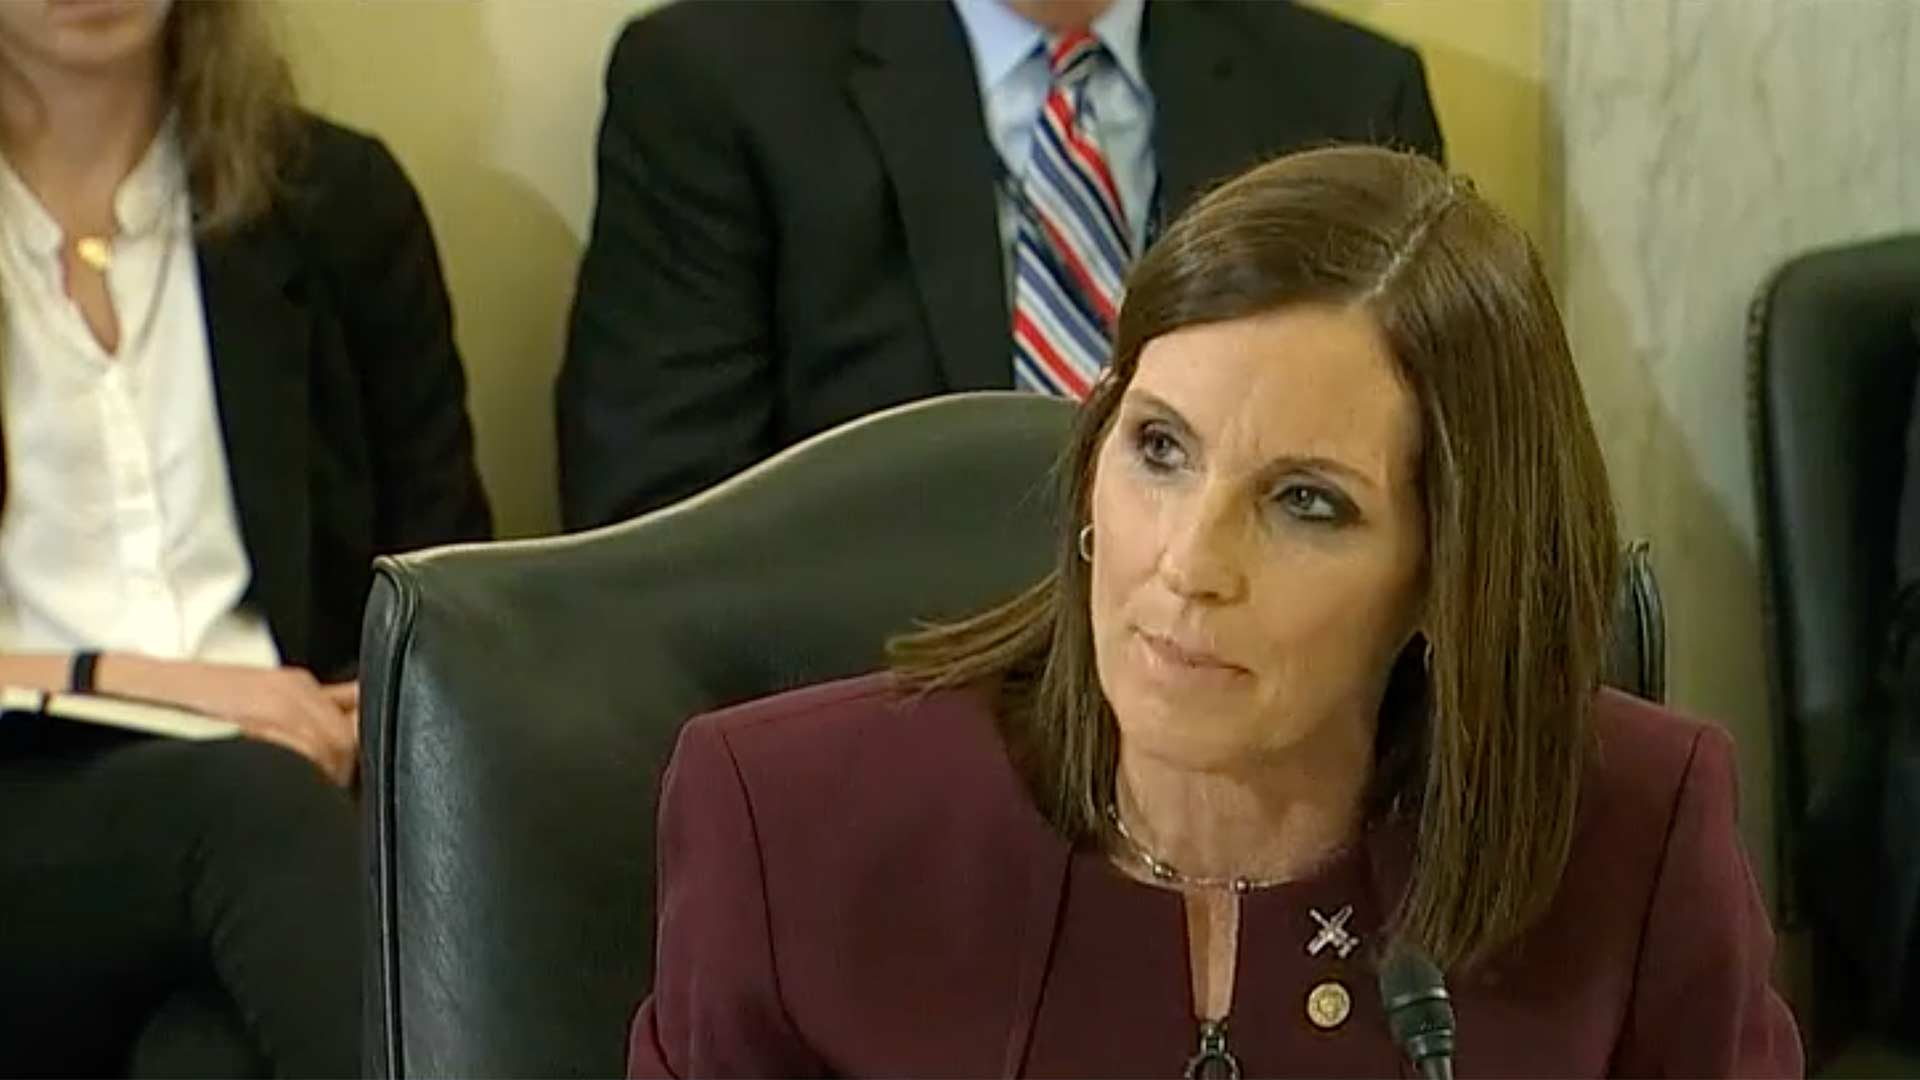 Sen. Martha McSally speaks at the Senate Armed Services Committee hearing on military sexual assault, March 6, 2019, in this still image from C-SPAN video.